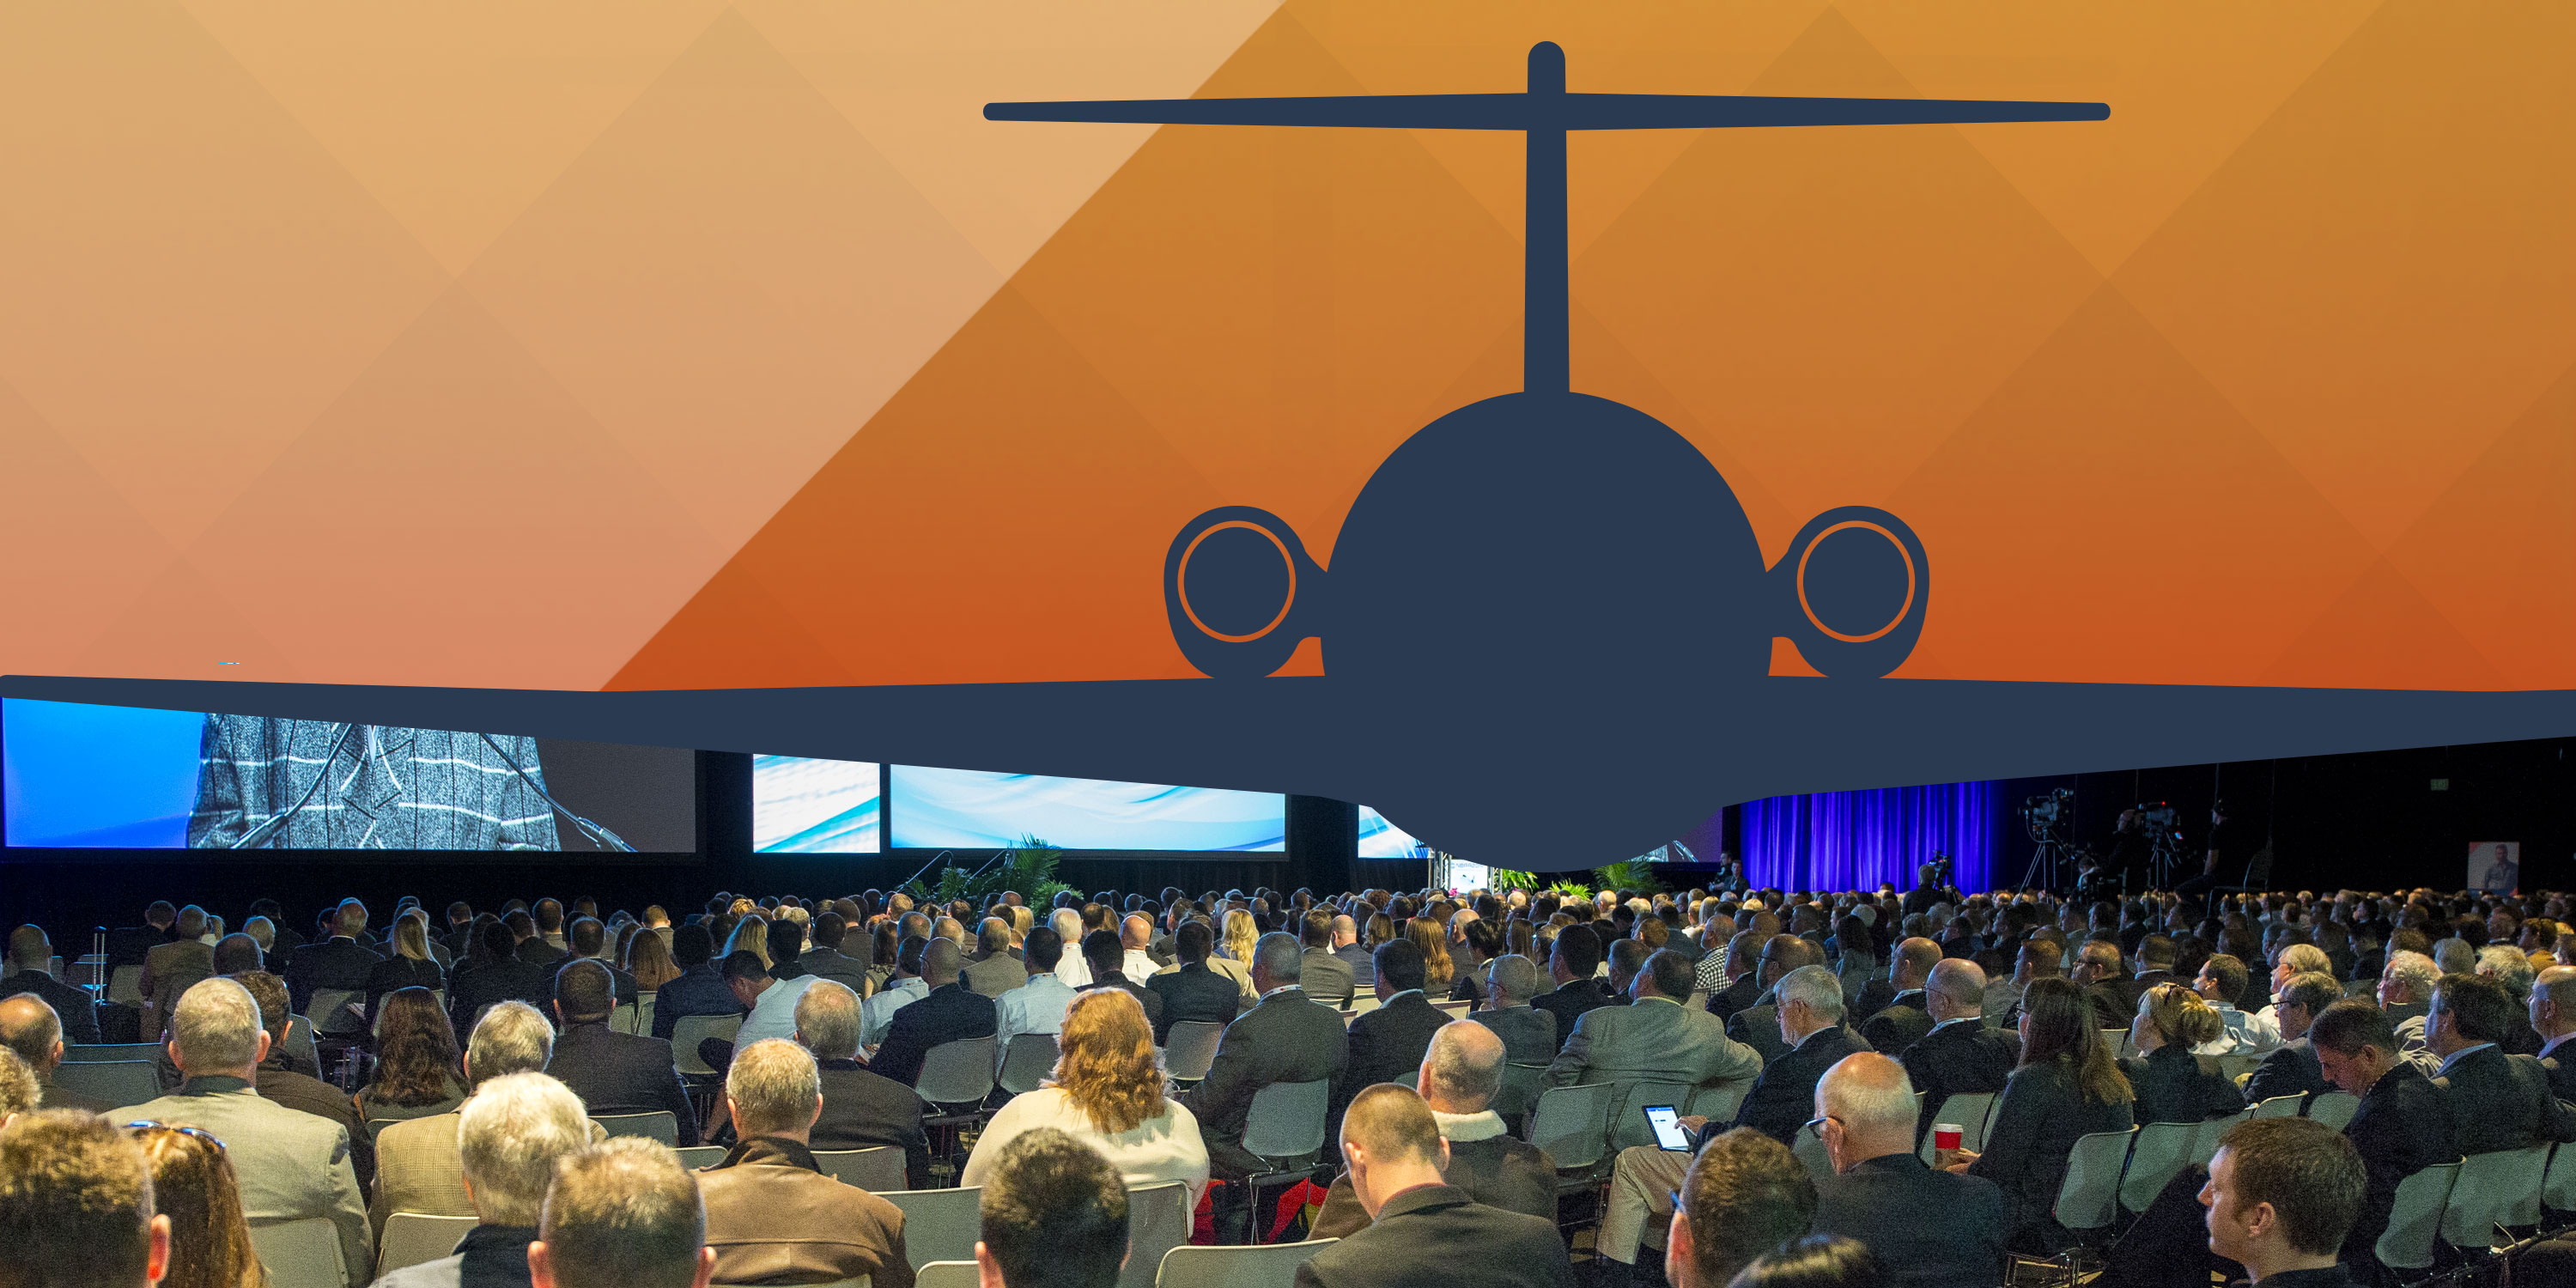 Program Schedule | Nbaa – National Business Aviation Association With Regard To Orlando Convention Center Schedule 2021